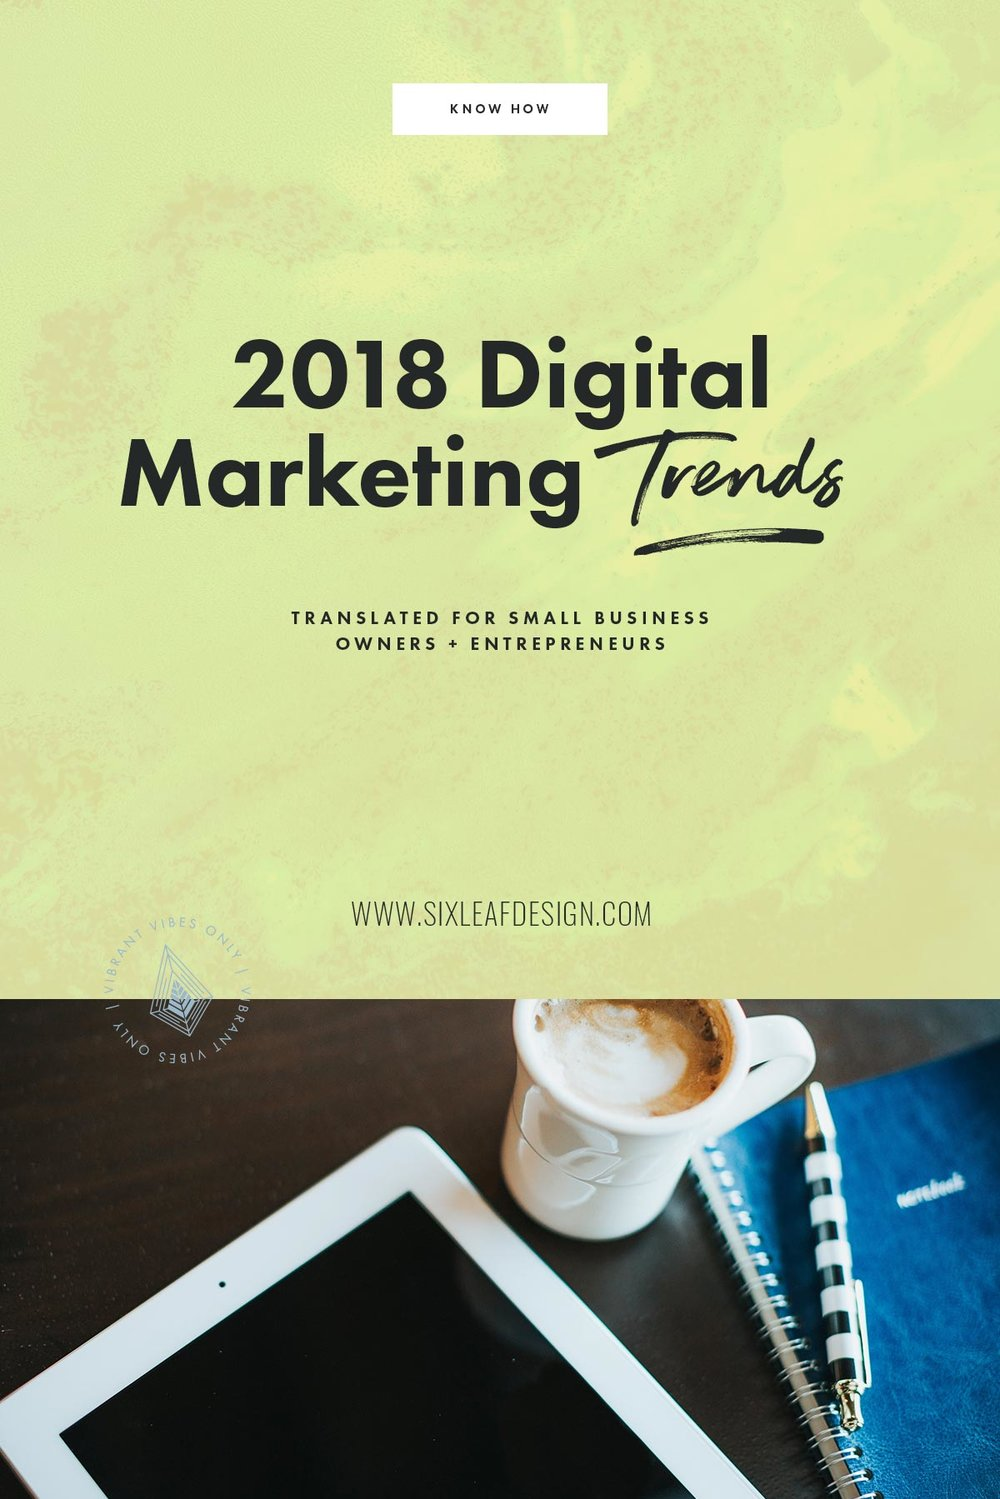 2018 Digital Marketing Trends Translated for Small Business Owners + Entrepreneurs